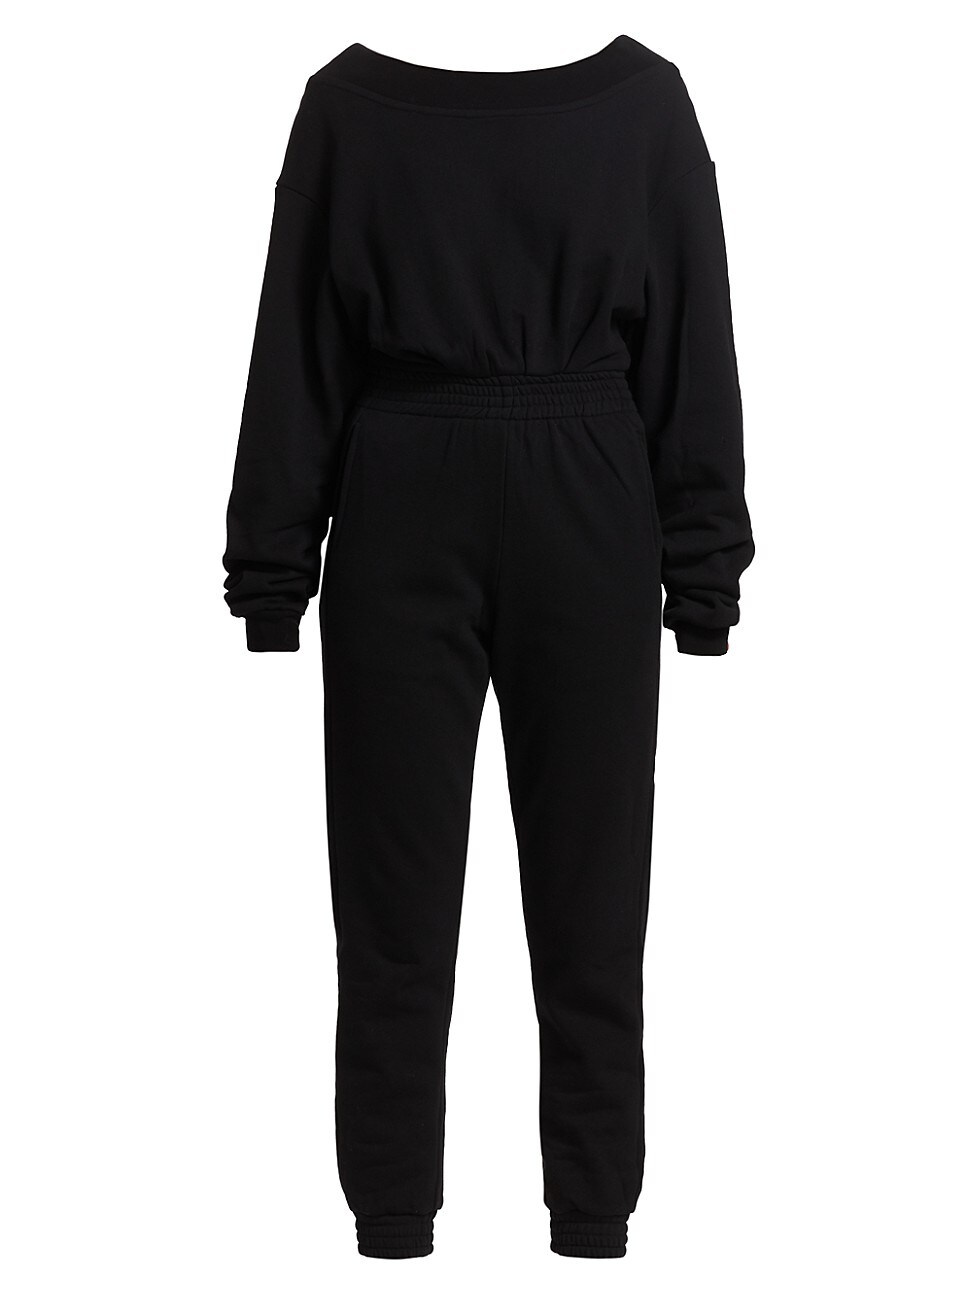 Rta WOMEN'S GIOVANNI RELAXED JUMPSUIT